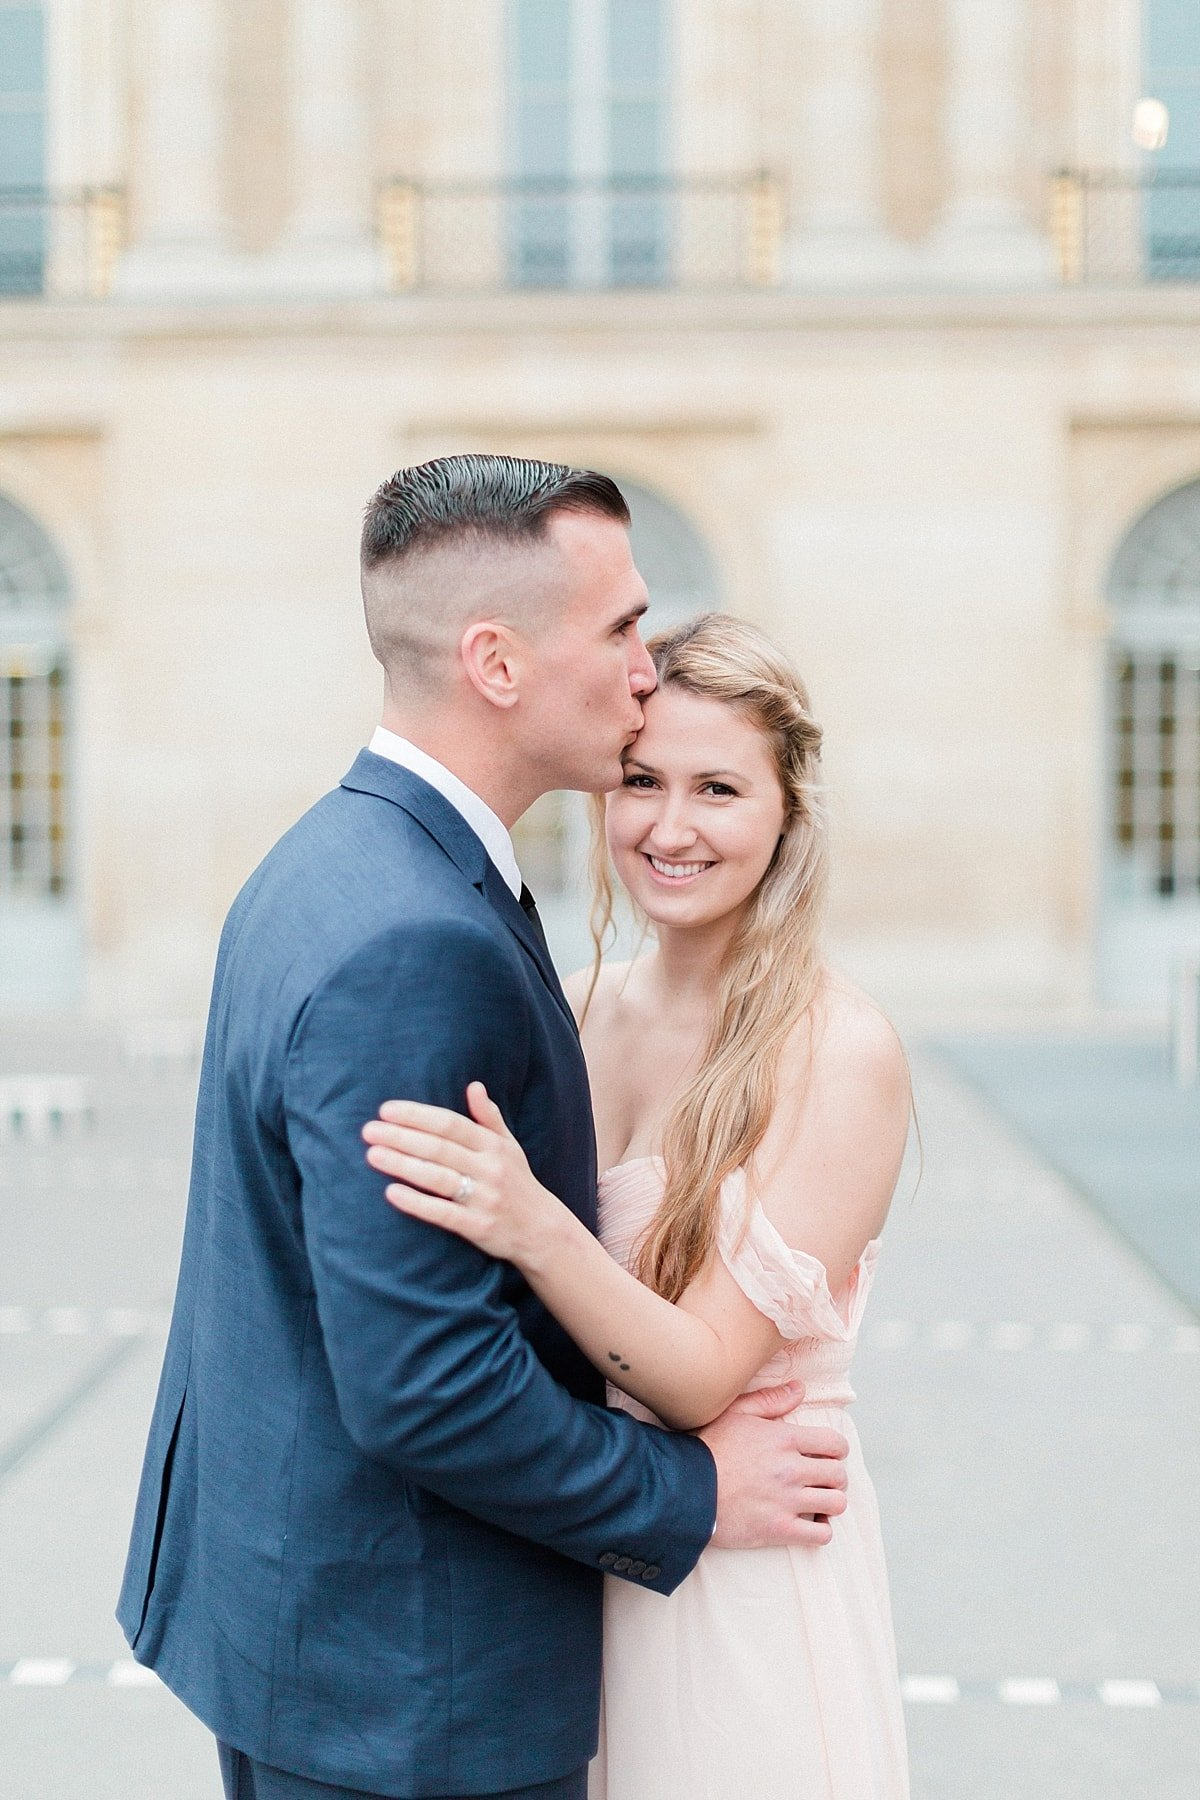 Paris, France anniversary session photographed at Palais Royal by France Destination Wedding Photographer, Alicia Yarrish Photography